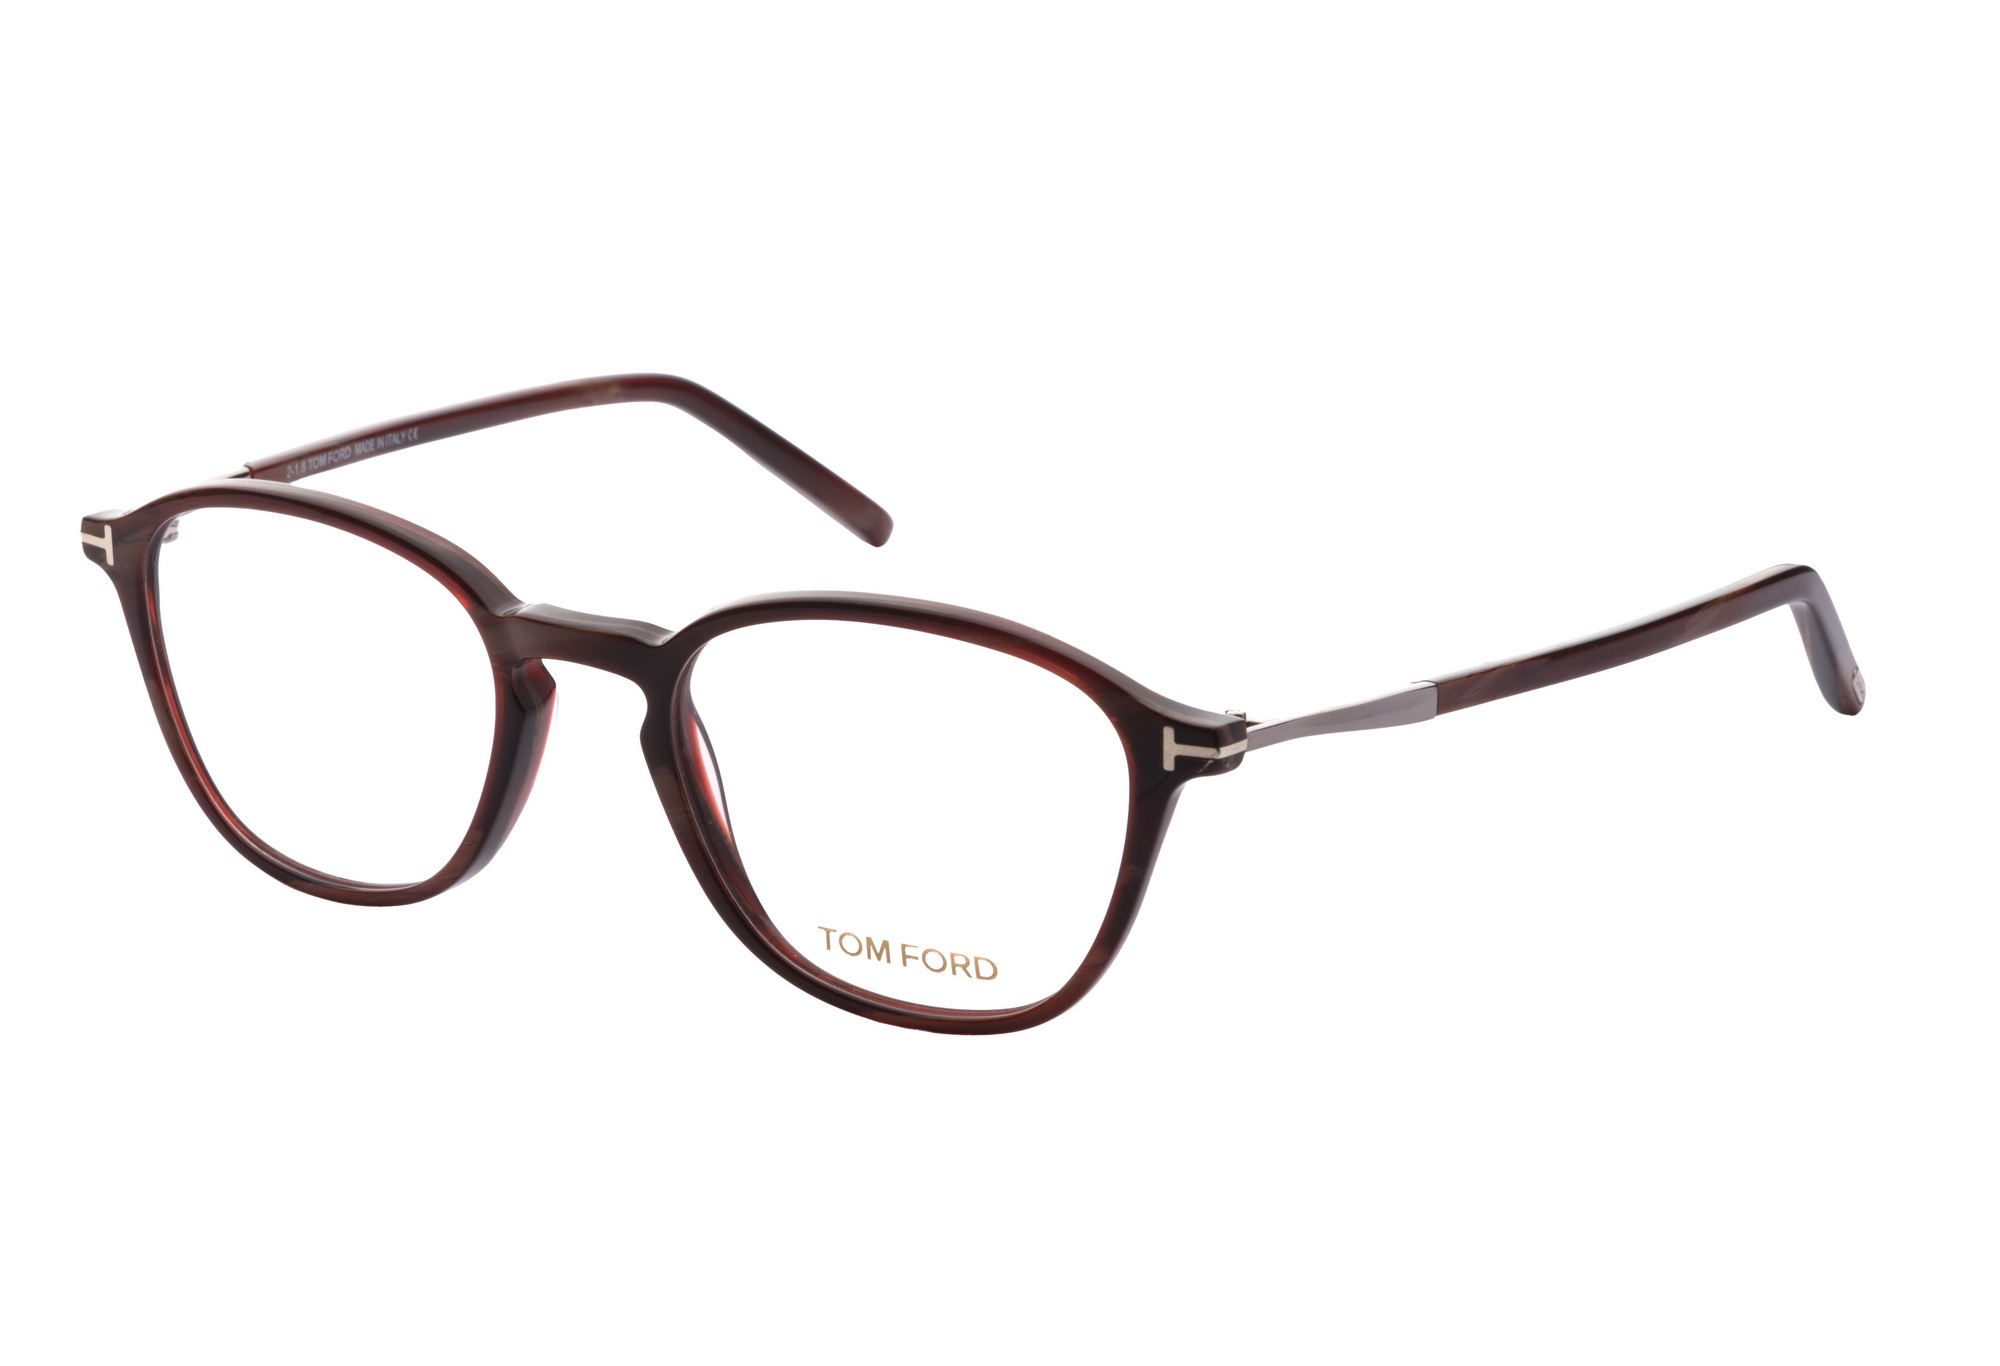 Tom Ford TF3005